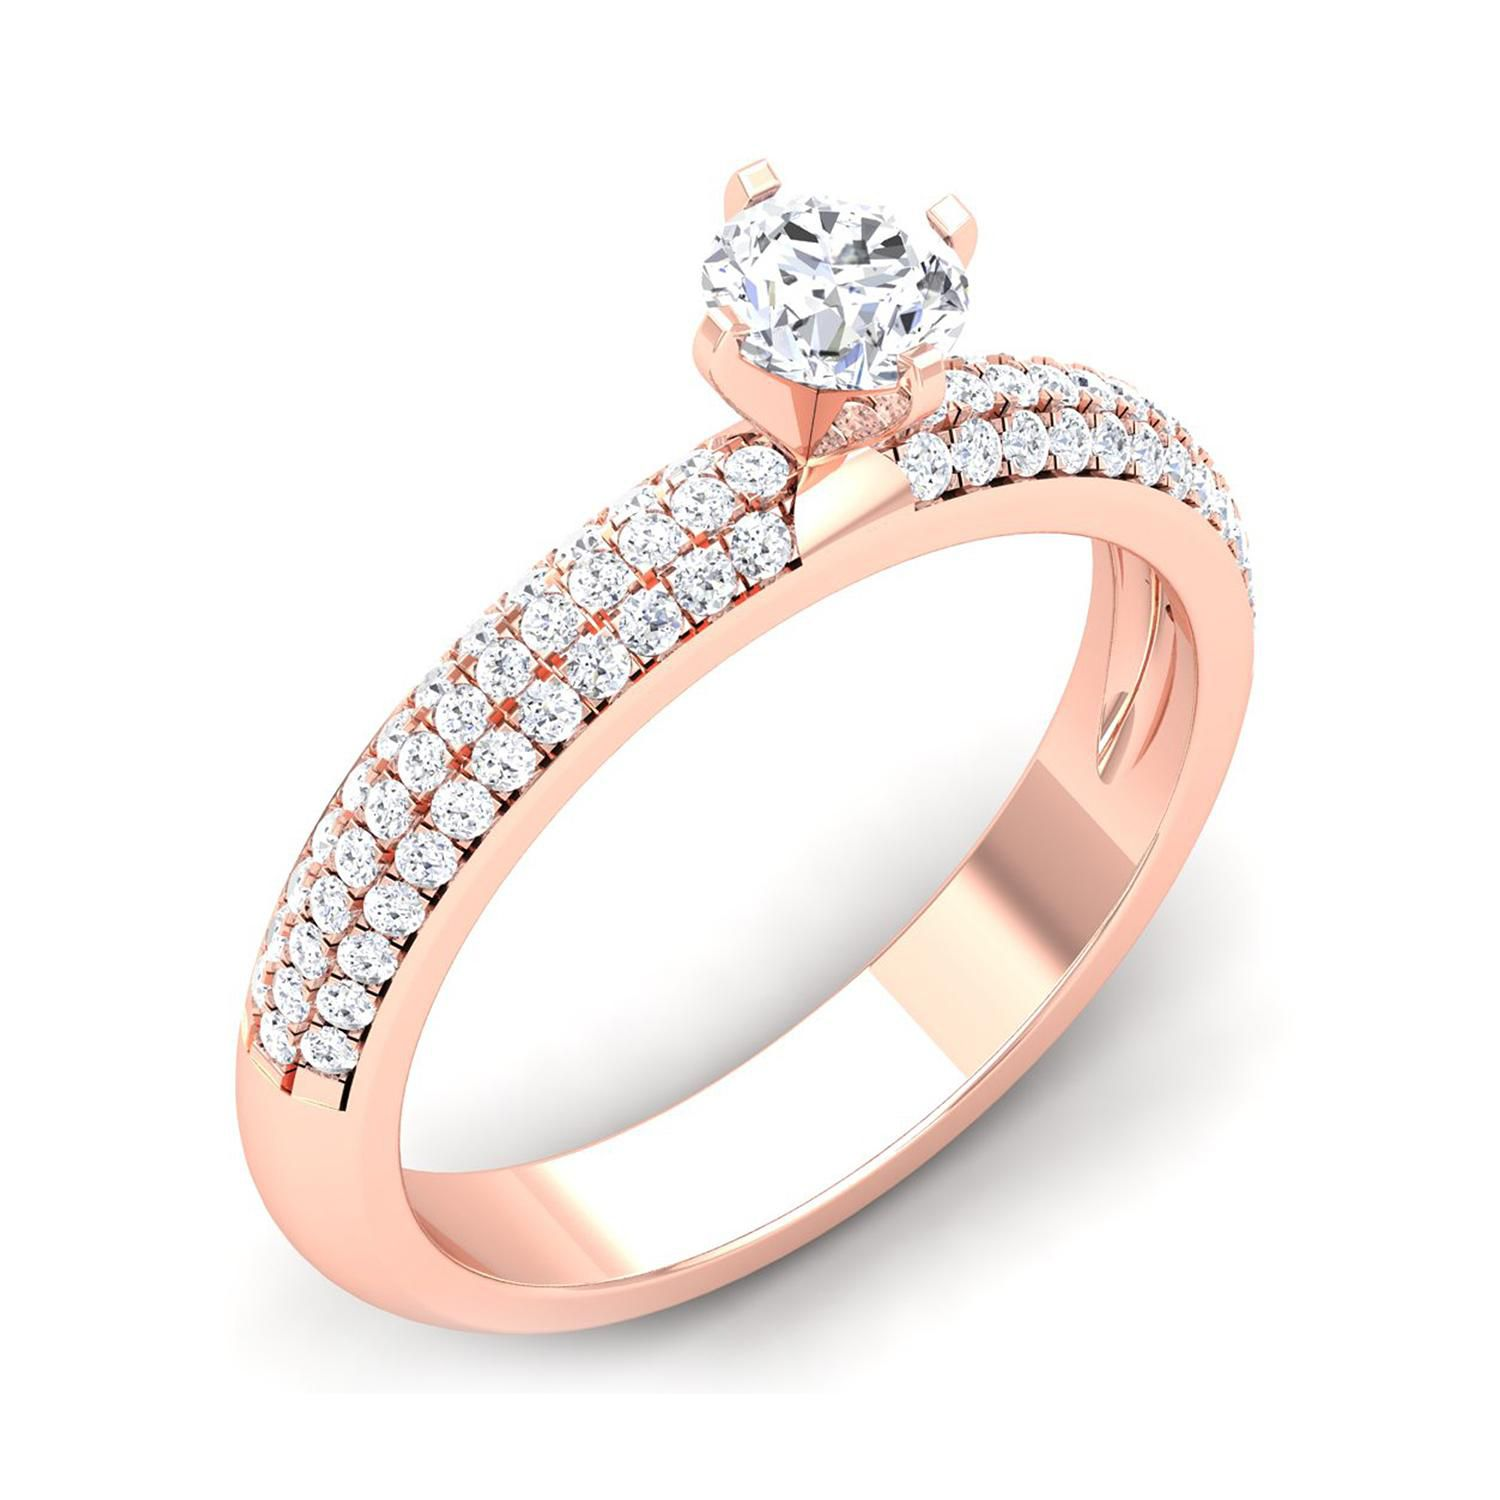 Me-Solitaire 18k Gold Ring